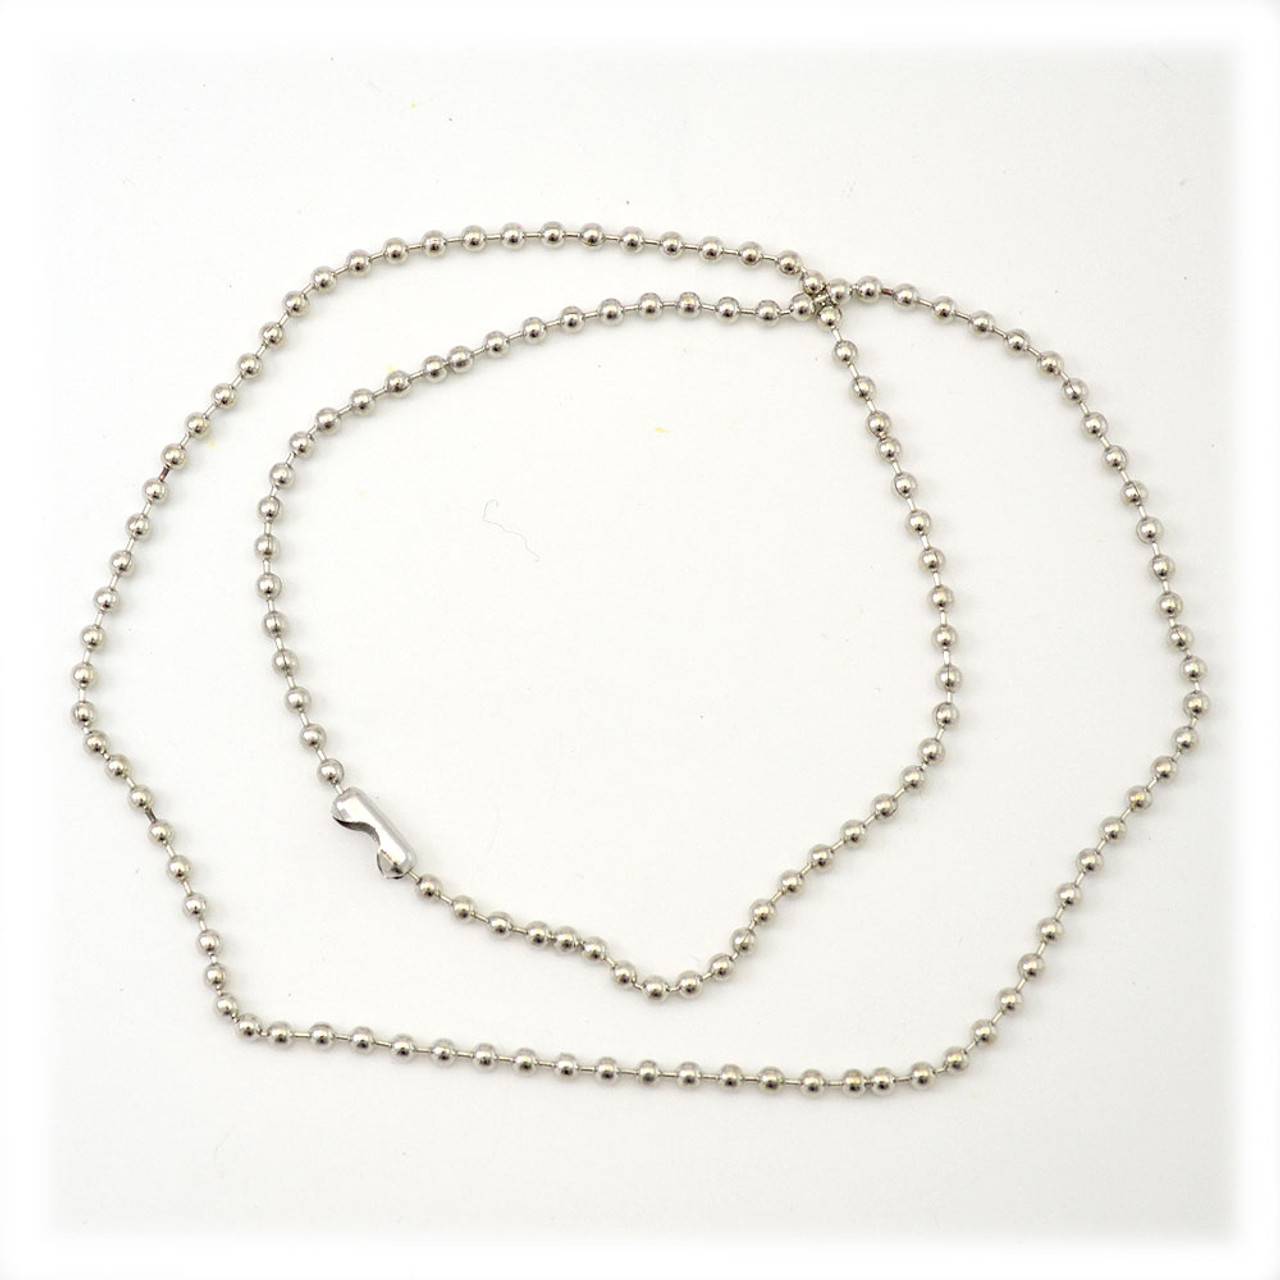 Ball Link Silver Metal Chain 18IN